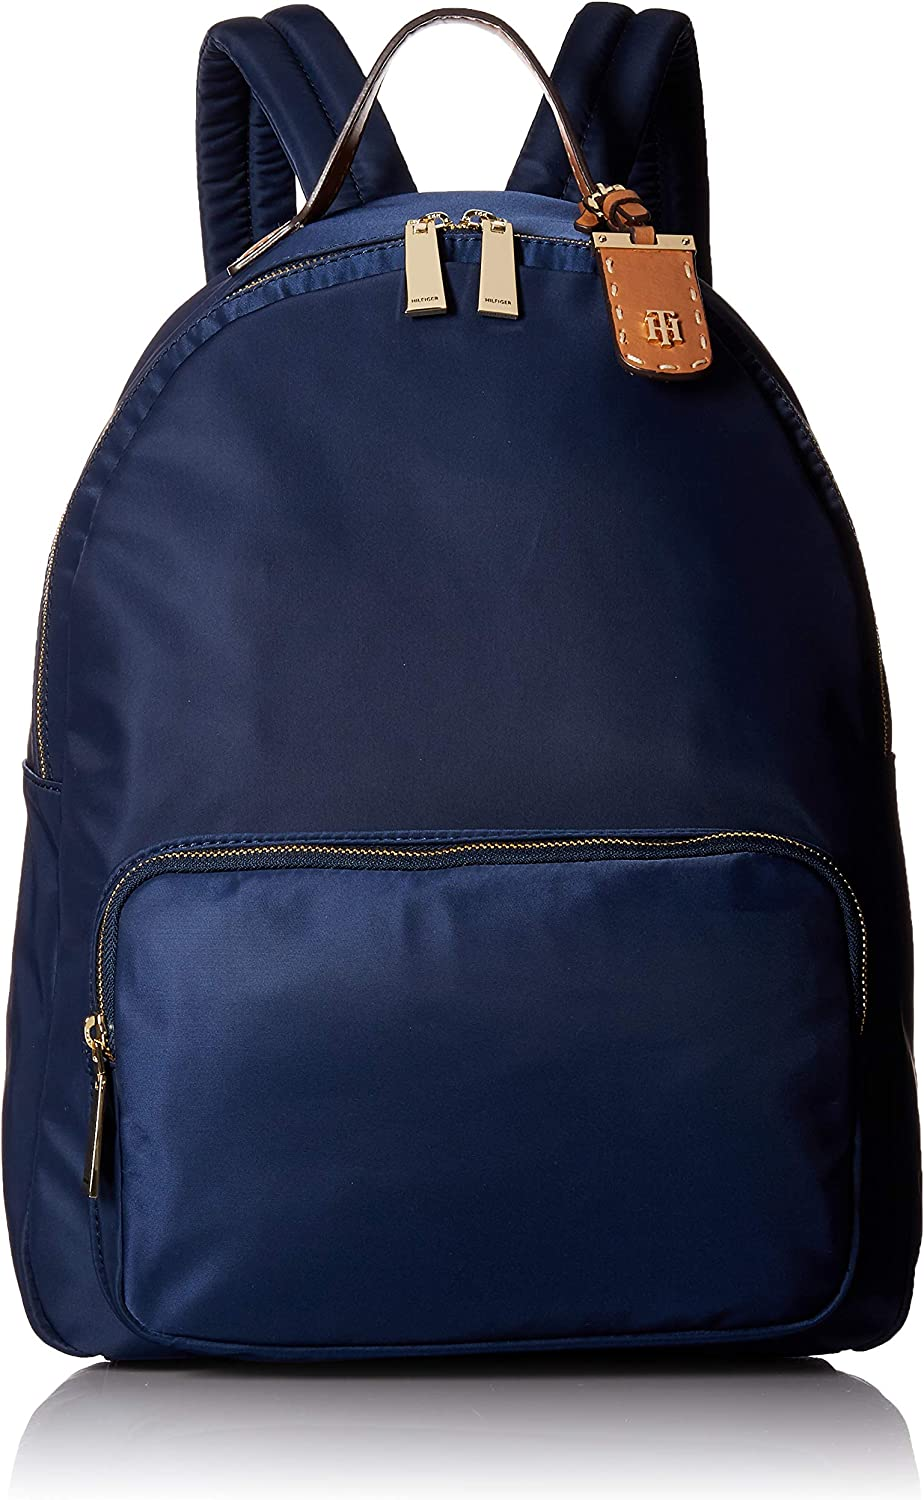 TOMMY HILFIGER Backpack Special sale item for Women Julia Navy National uniform free shipping